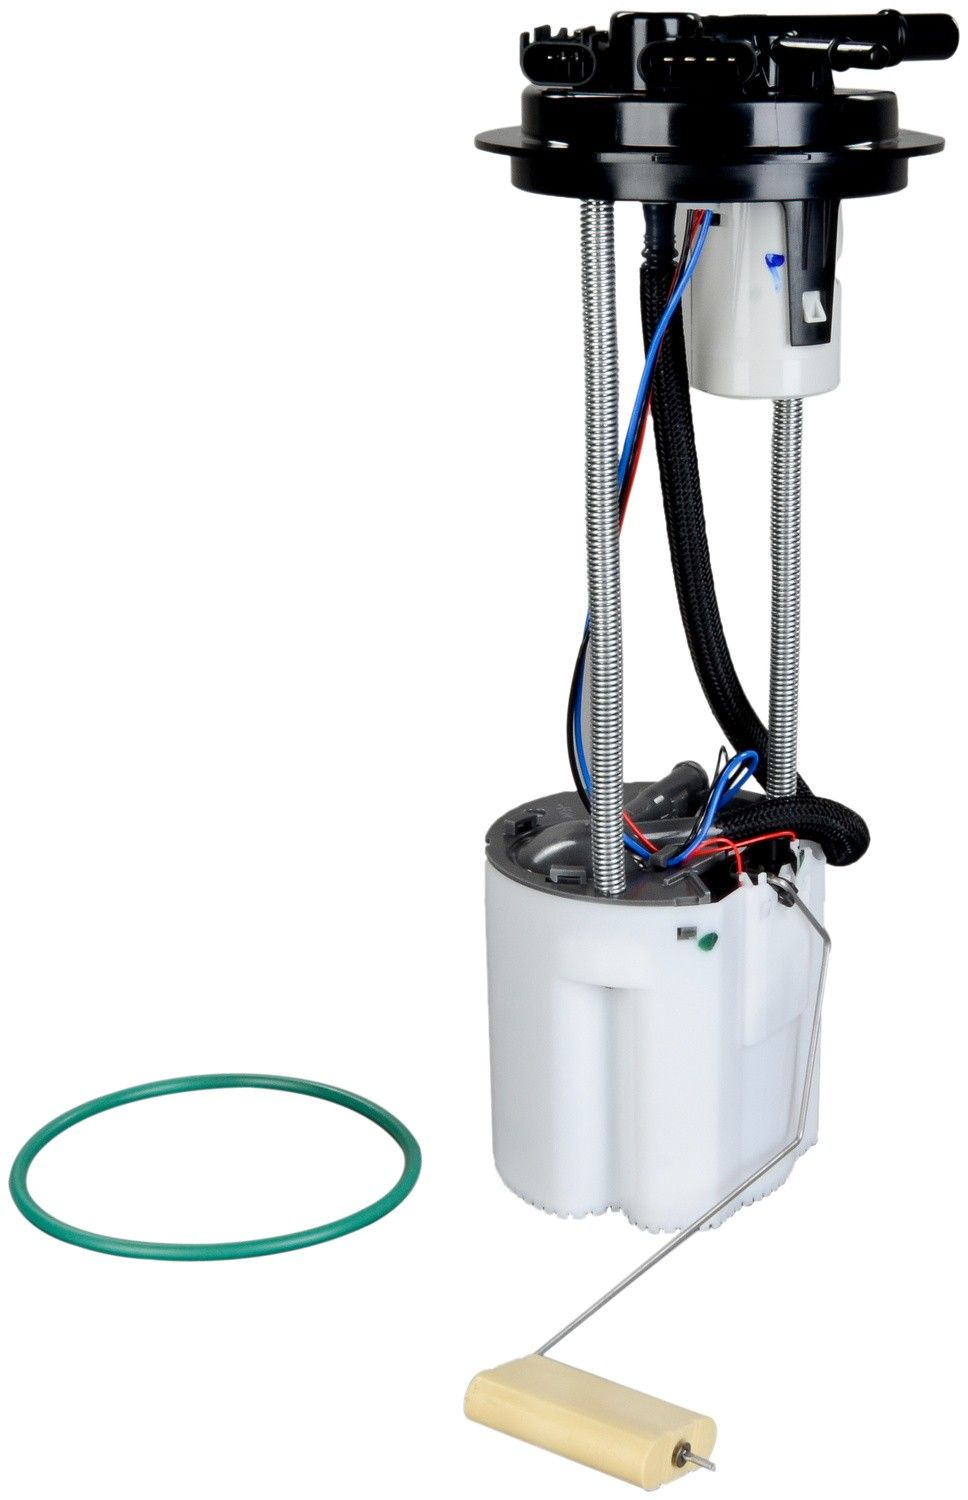 Gmc Sierra 2500 Hd Fuel Pump Module Assembly Replacement Acdelco 2009 Wiring 8 Cyl 60l Bosch 69445 Actual Oe Part With Level Sensor